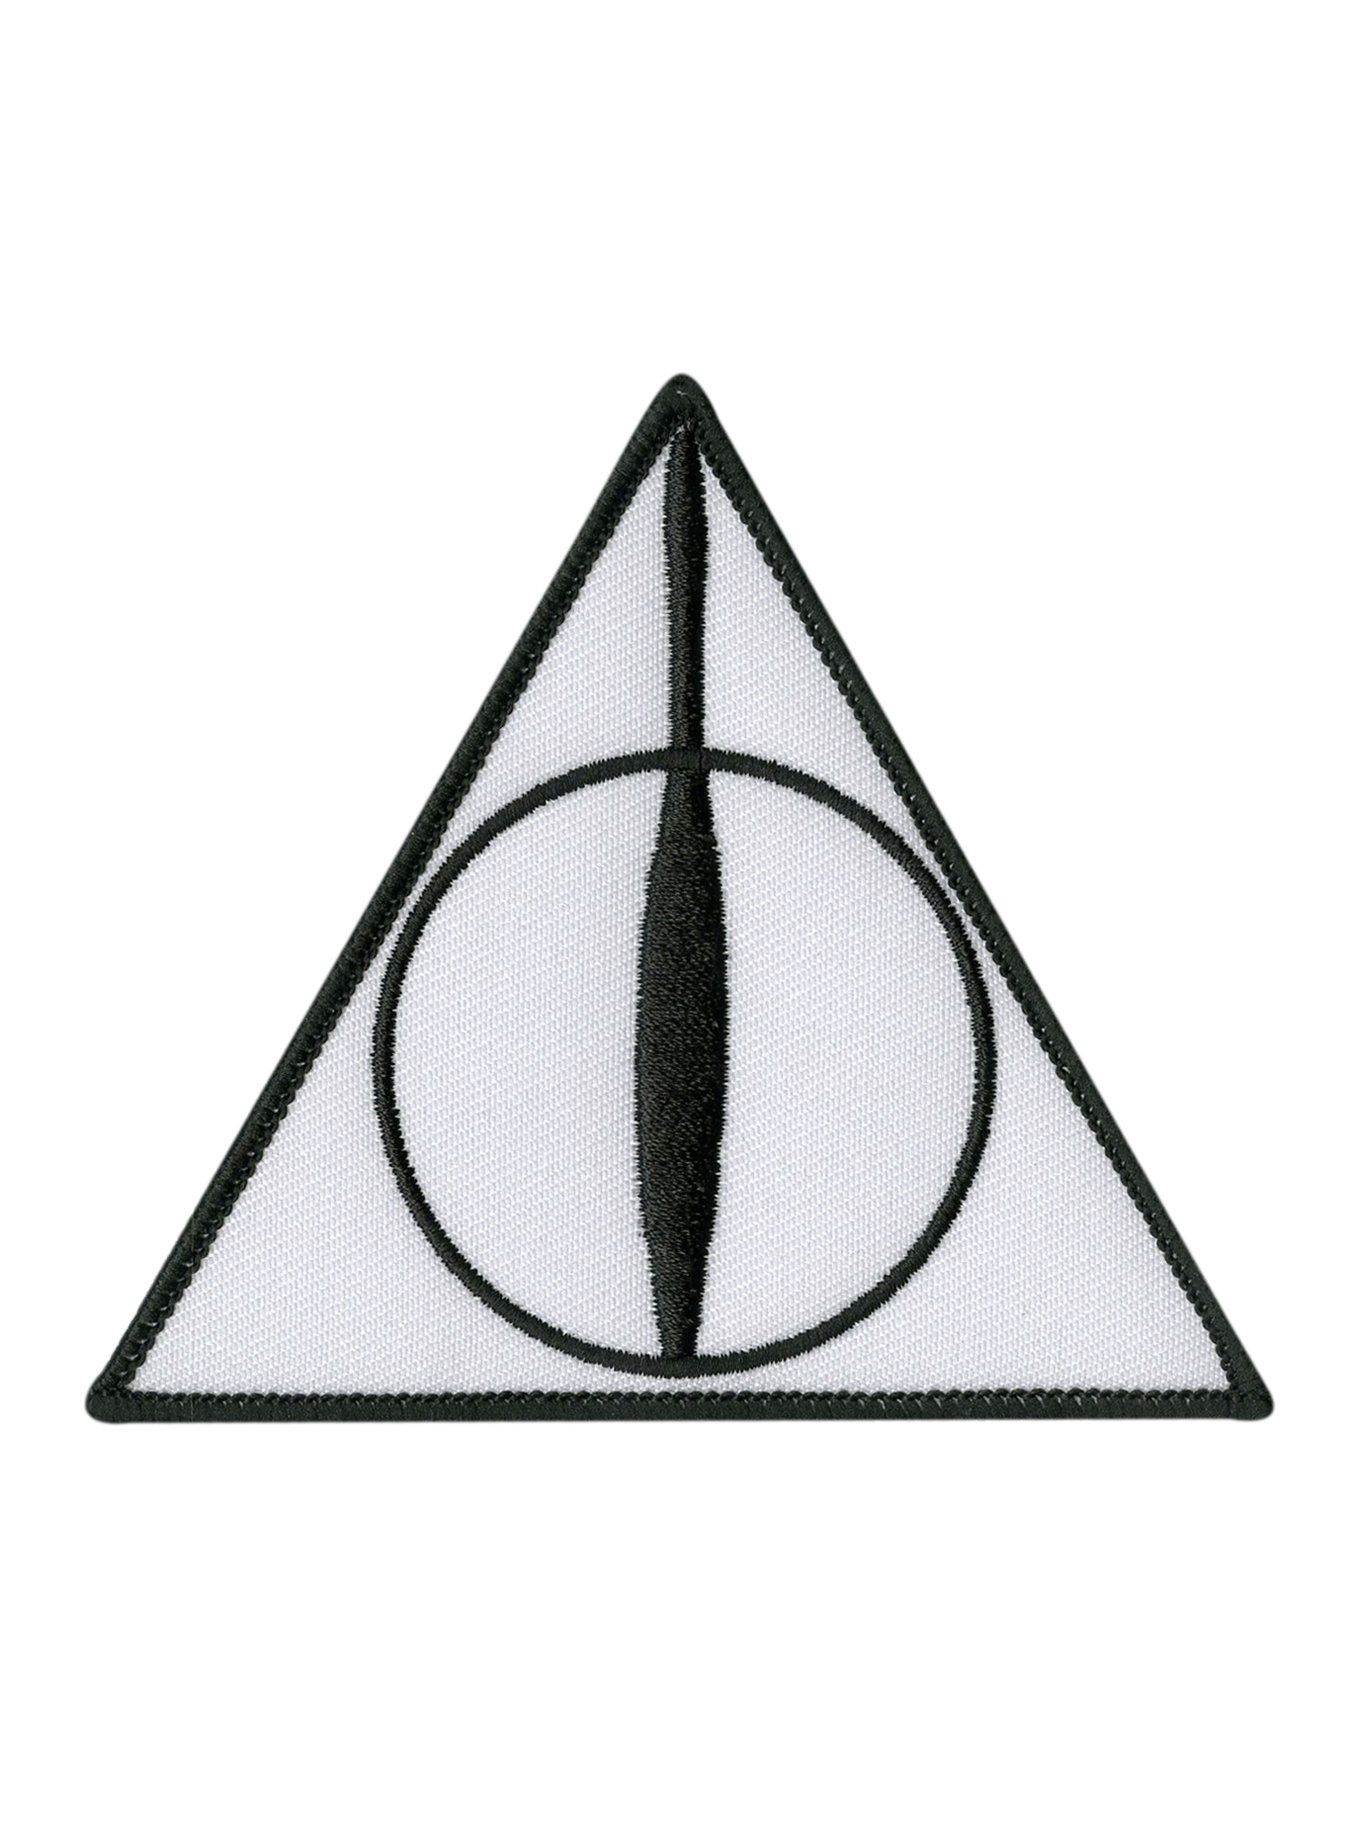 Harry Potter Deathly Hallows Iron On Patch Harry Potter Deathly